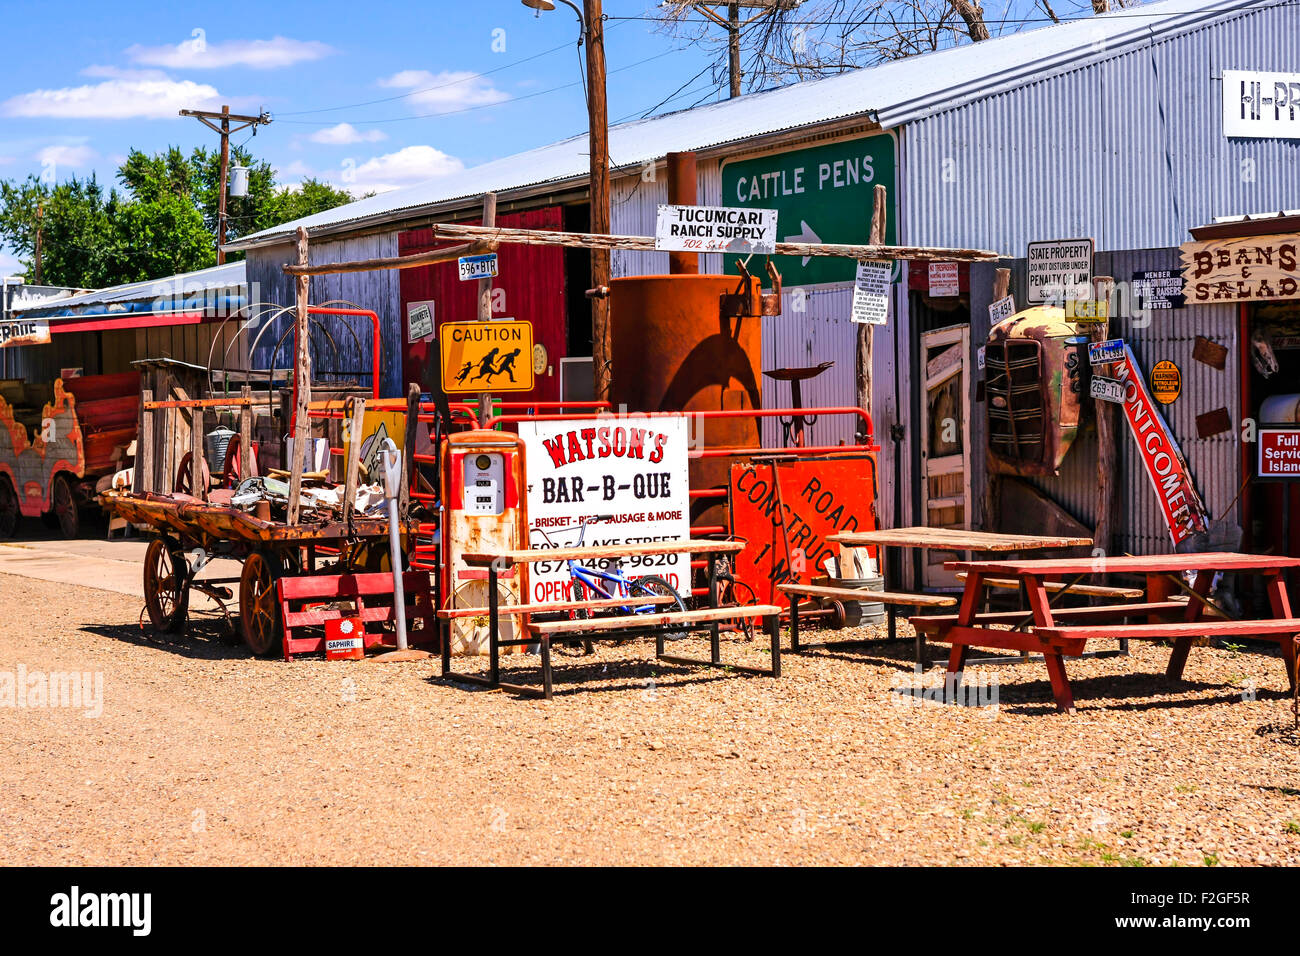 Watson's Bar-B-Que antiques and collectibles store in Tucumcari, New Mexico - Stock Image